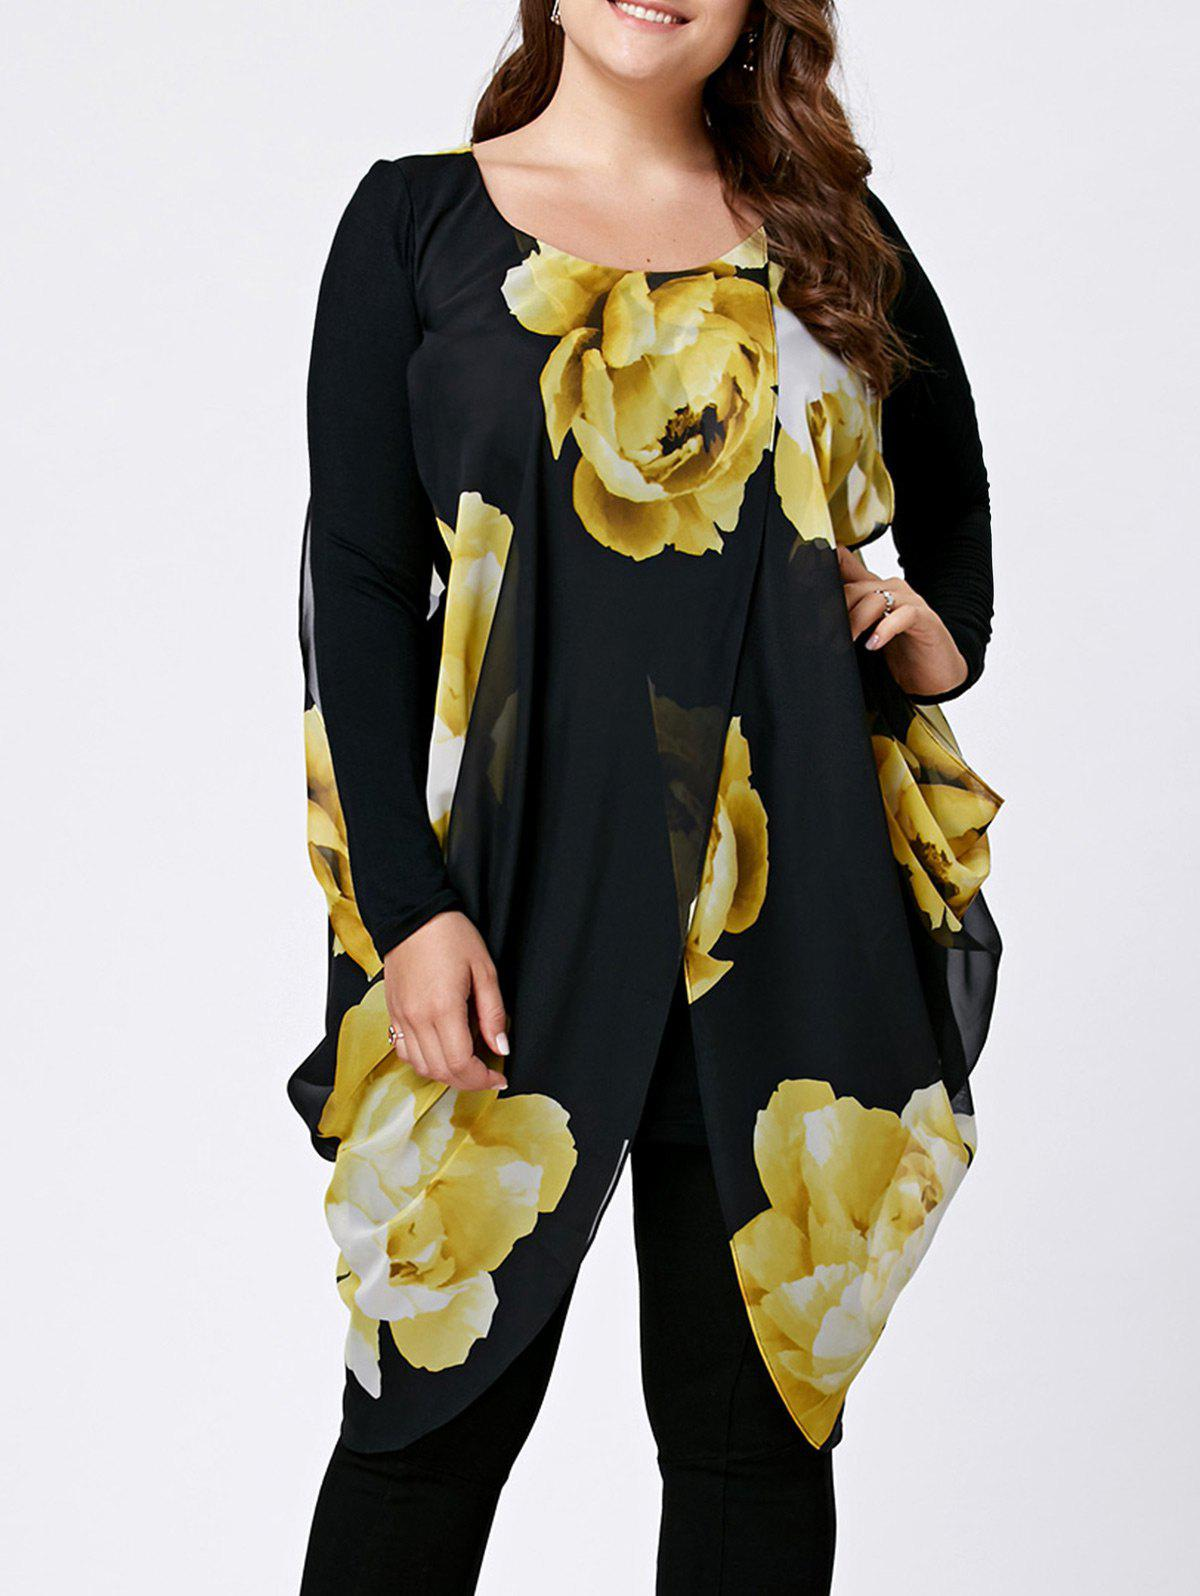 Chiffon Slit Floral Plus Size Tunic TopWOMEN<br><br>Size: 3XL; Color: COLORMIX; Material: Cotton Blends,Spandex; Shirt Length: Long; Sleeve Length: Full; Collar: Round Neck; Style: Fashion; Season: Fall,Spring; Pattern Type: Floral; Weight: 0.3660kg; Package Contents: 1 x Top;